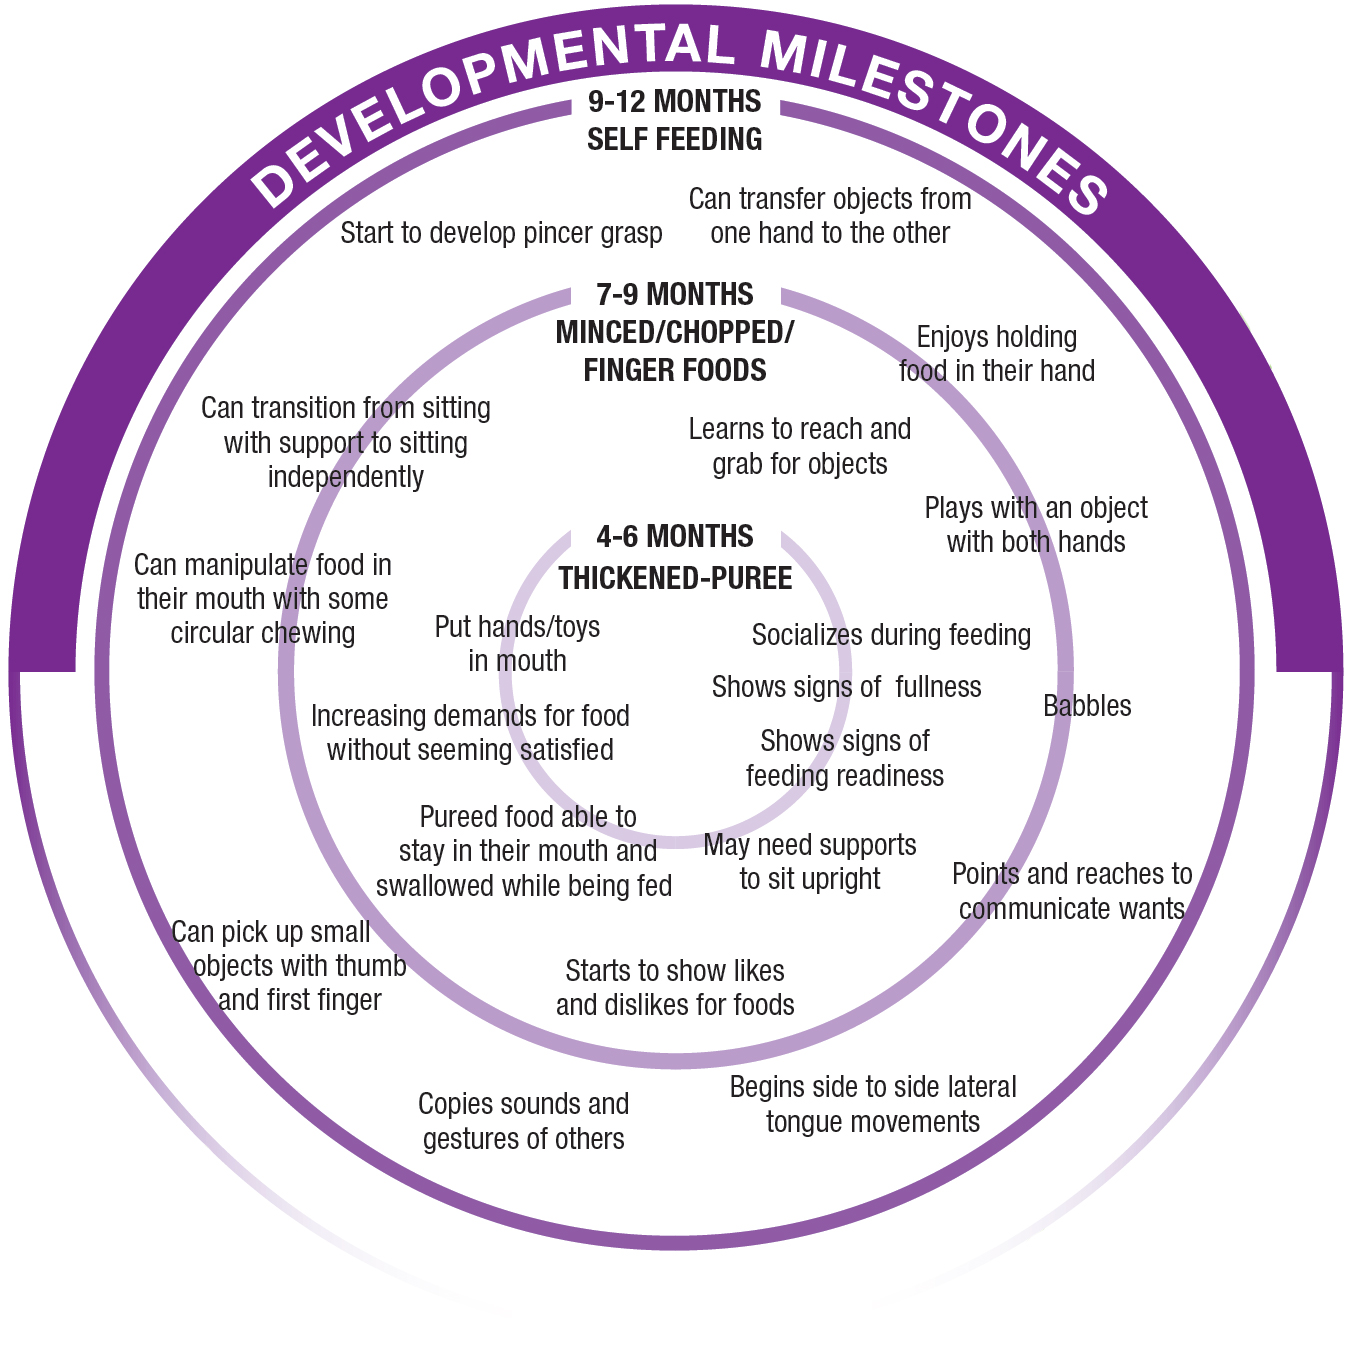 A circular diagram depicting developmental milestones in baby's first year. Around 4-6 months: thickened-puree Around 7-9 months: minced/chopped/finger foods. Around 9-12 months: self-feeding. Early milestones around 4-6 months include: socializes during feeding, shows signs of fullness, shows signs of feeding readiness, may need supports to sit upright, pureed food able to stay in their mouth and swallowed while being fed, increasing demands for food without seeming satisfied, put hands/toys in mouth. Later milestones, between 6-12 months: learns to reach and grab objects, enjoys holding food in their hand, starts to show likes and dislikes for food, babbles, points and reaches to communicate wants, begins side to side lateral tongue movements, copies sounds and gestures of others, starts to show likes and dislikes for foods, can pick up small objects with thumb and first finger, can manipulate food in their mouth with some circular chewing, can transition from sitting with support to sitting independently, start to develop pincer grasp, can transfer objects from one hand to the other.